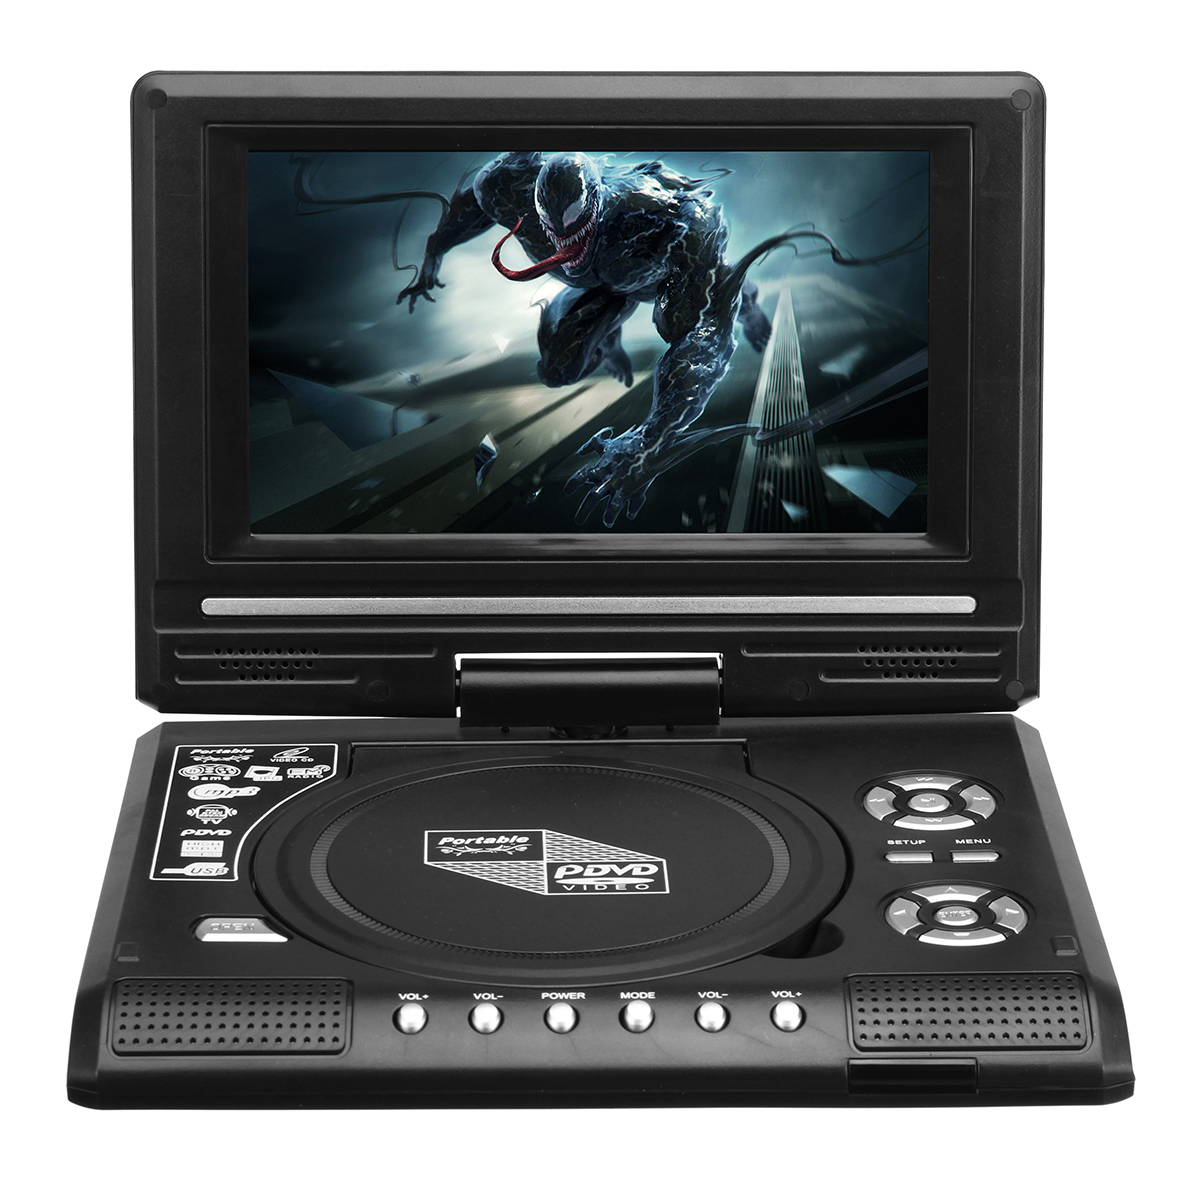 7.8 Inch Portable TV Program Game 270 Degree Rotation Car DVD Pl